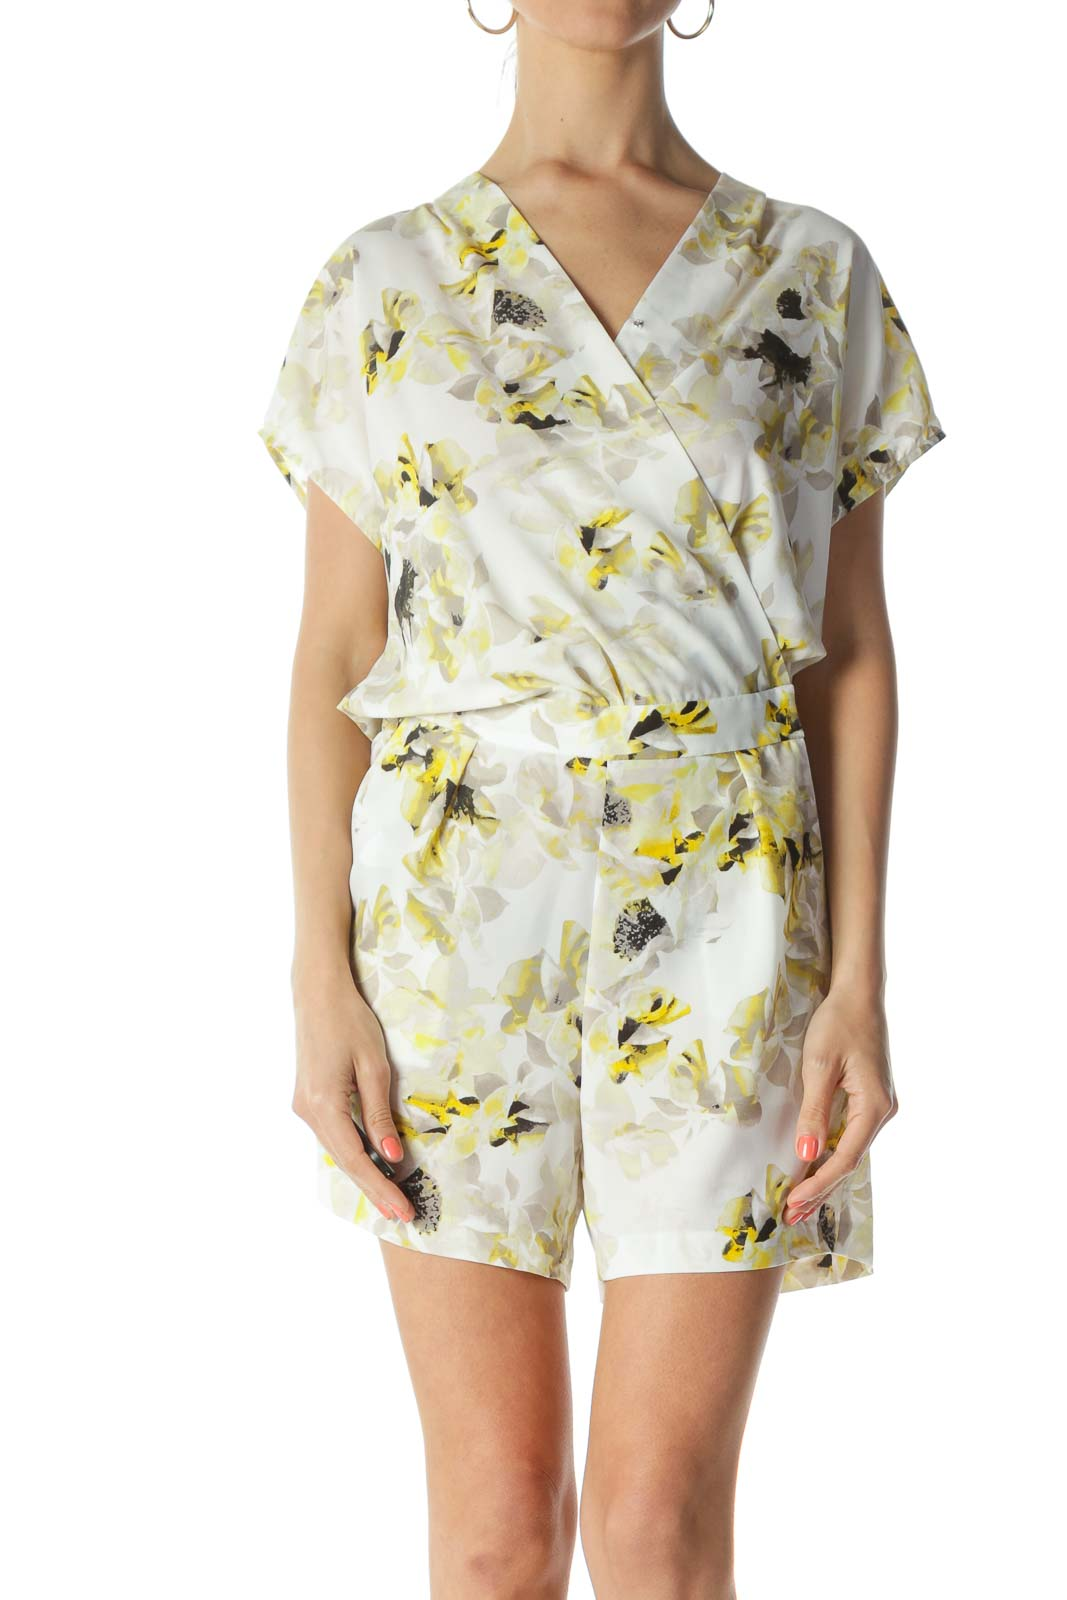 White/Yellow/Black Floral-Print Elastic-Waist Pocketed Romper